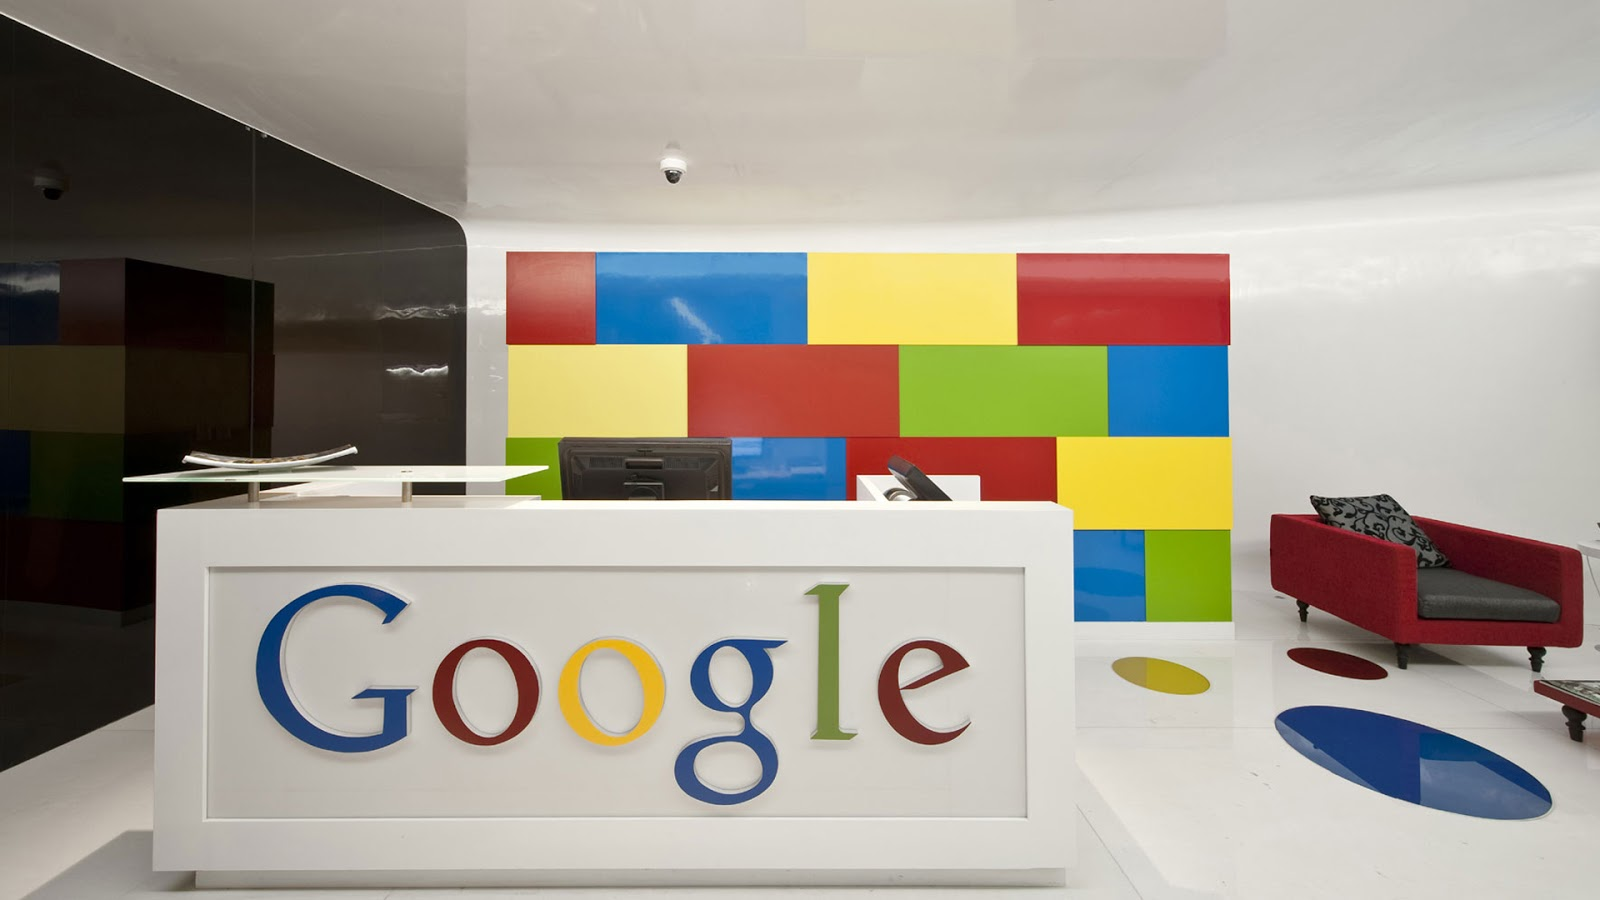 Inside google office 2013 full hd 1080p hd wallpapers for Oficinas de youtube mexico